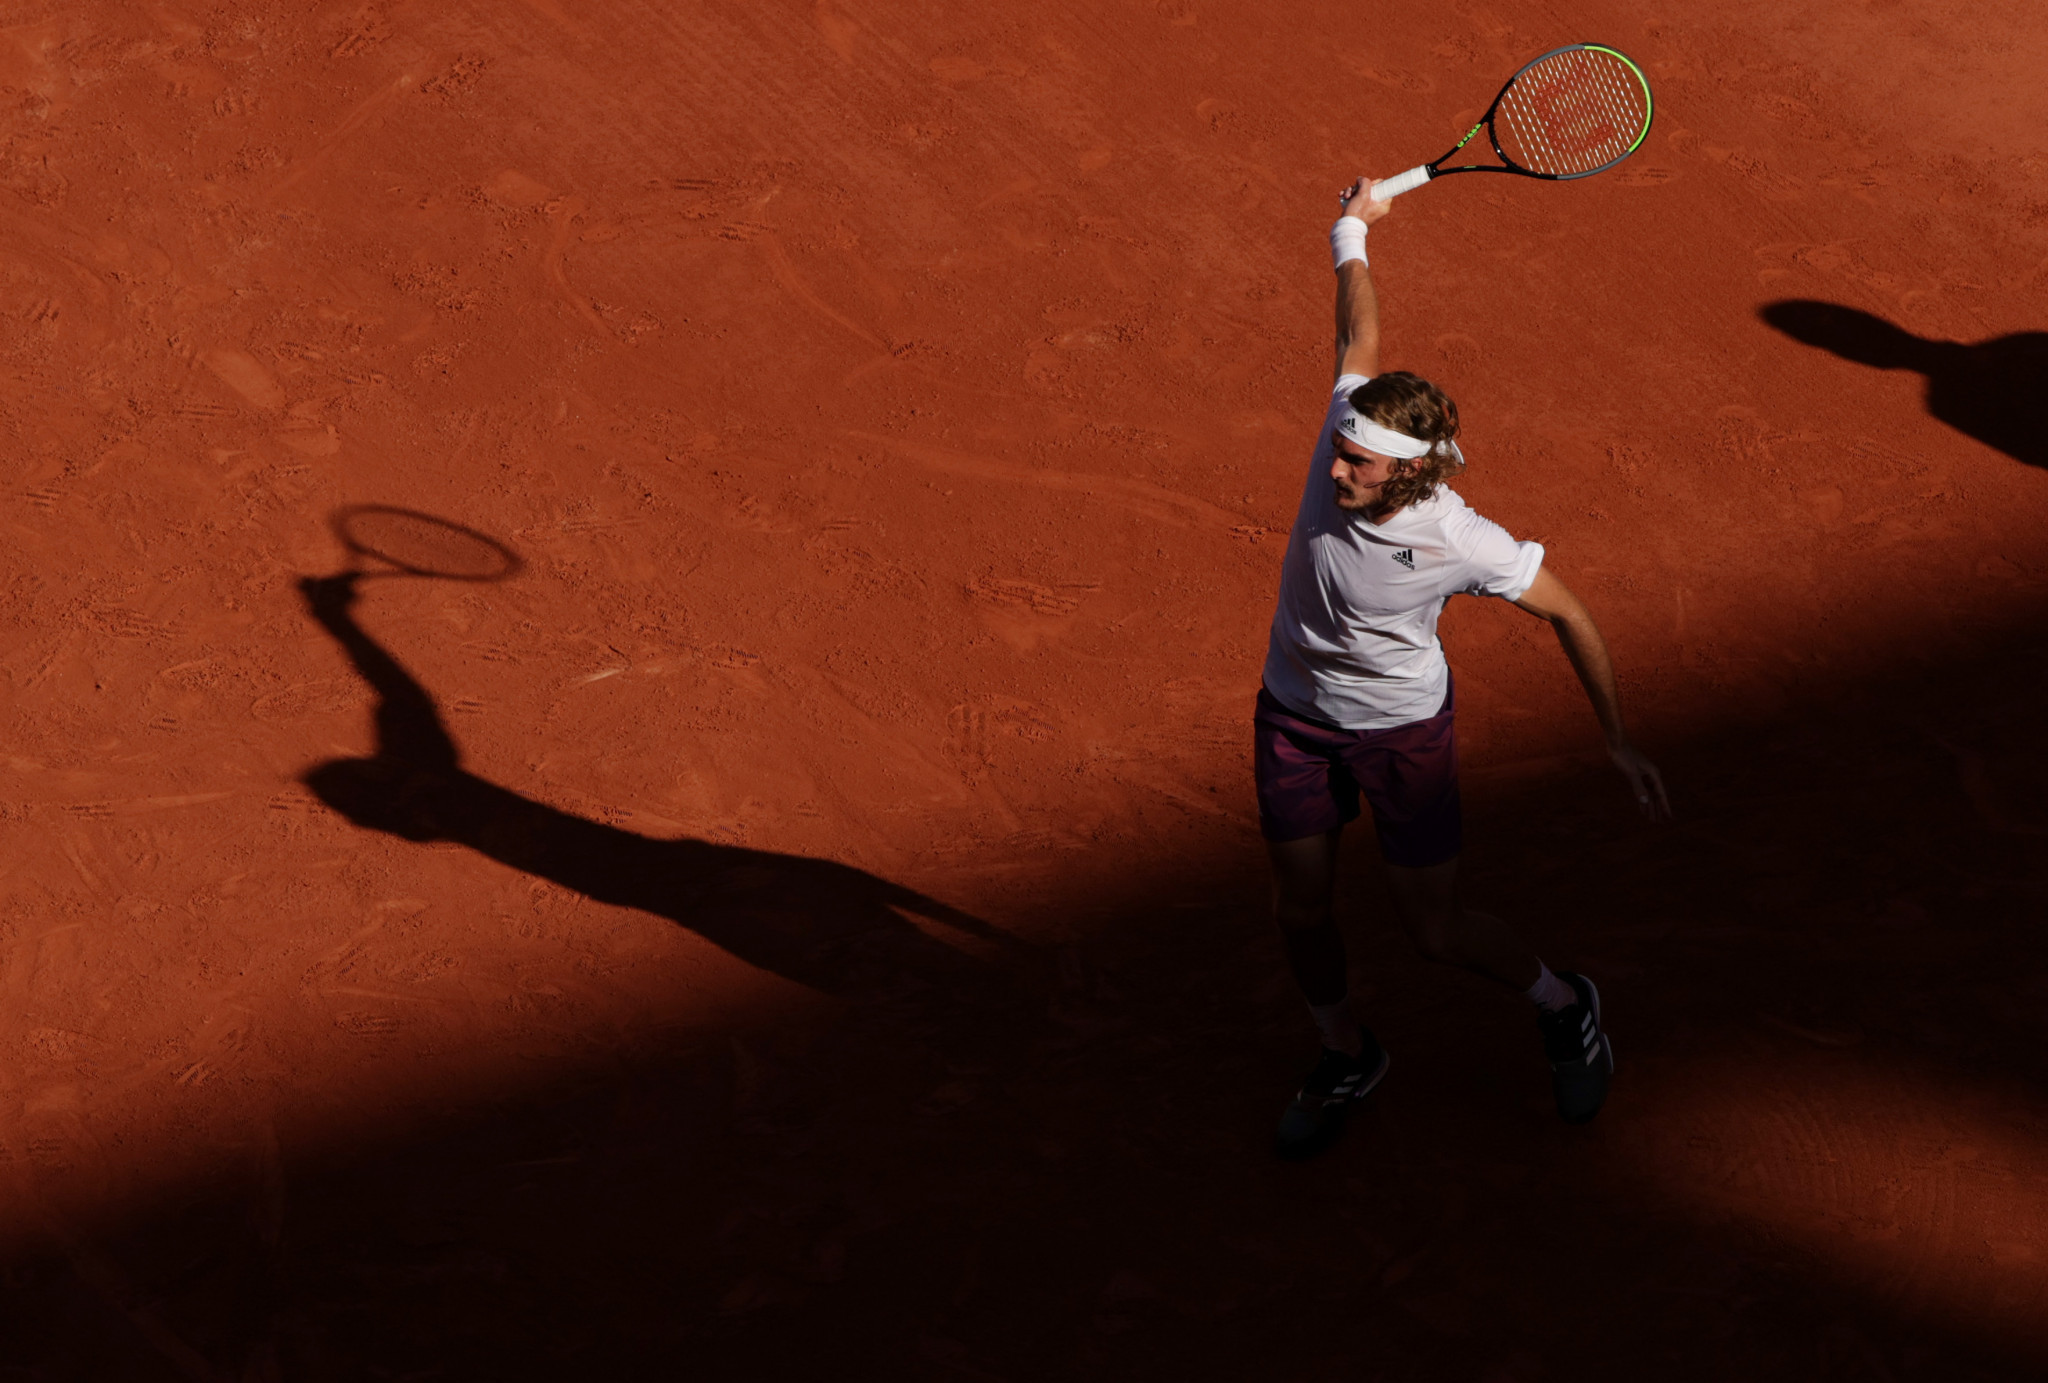 Tsitsipas plays a flourishing backhand on the way to a five-set victory over Zverev on a marathon day of men's semi-final action in Paris ©Getty Images